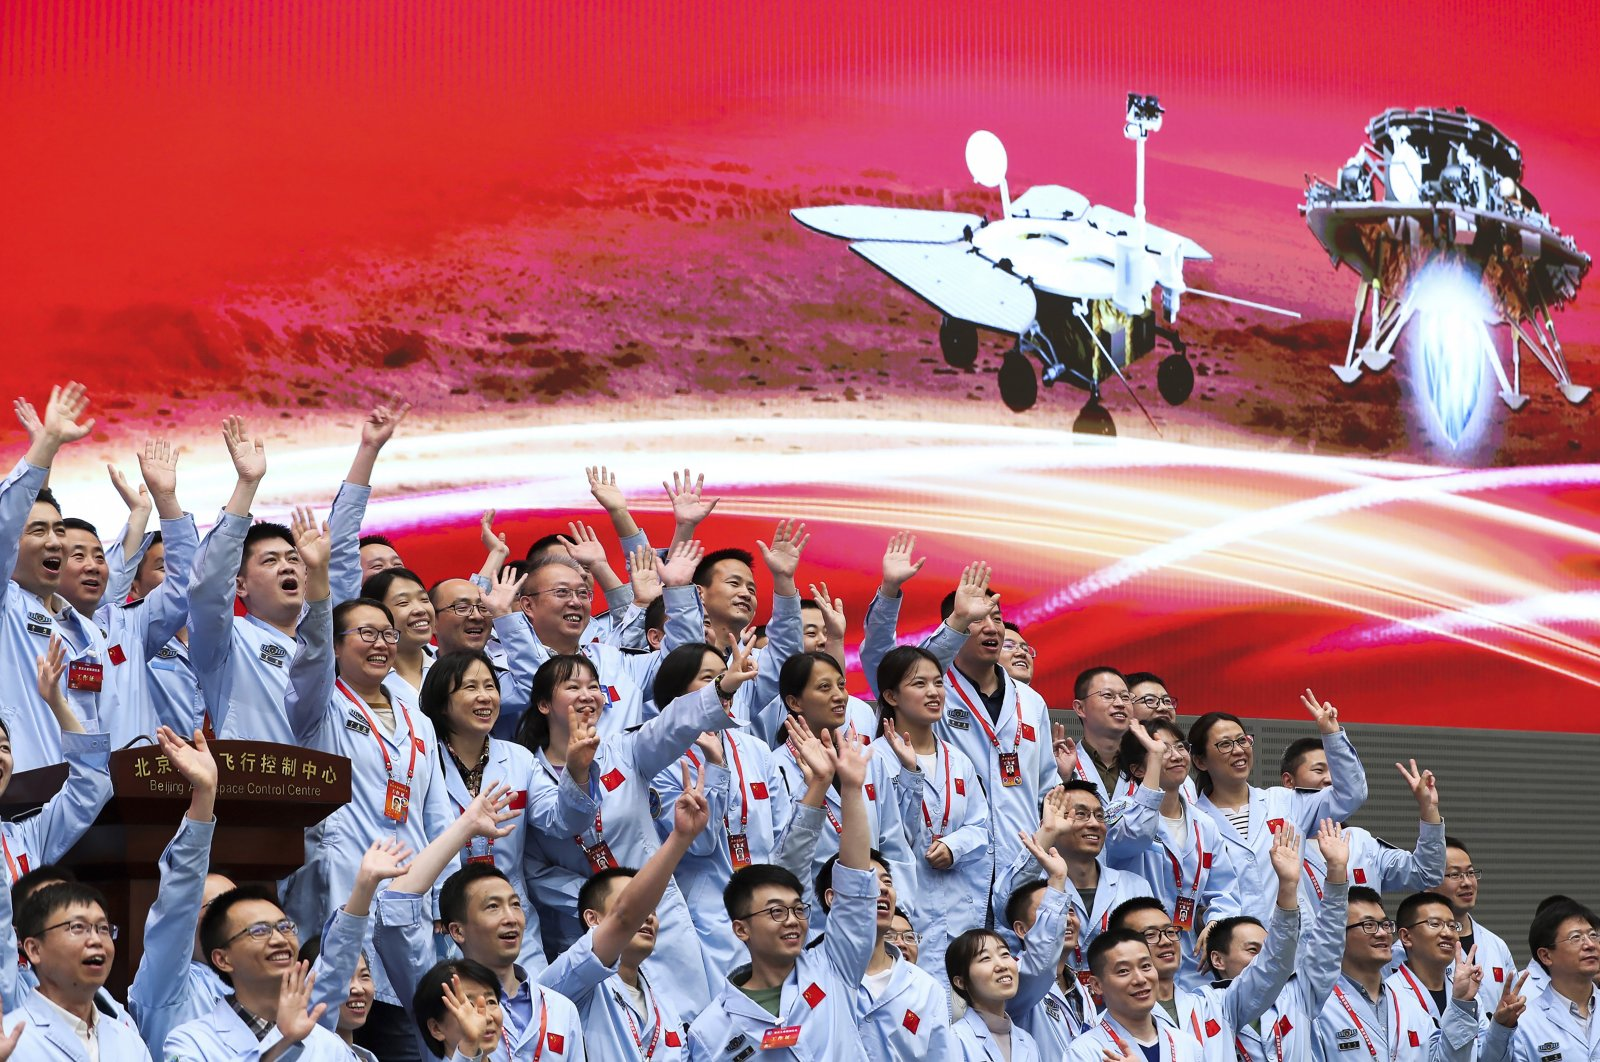 Members at the Beijing Aerospace Control Center celebrate after China's Tianwen-1 probe carrying the Zhurong rover successfully landed on Mars, Beijing, China, May 15, 2021. (AP Photo)